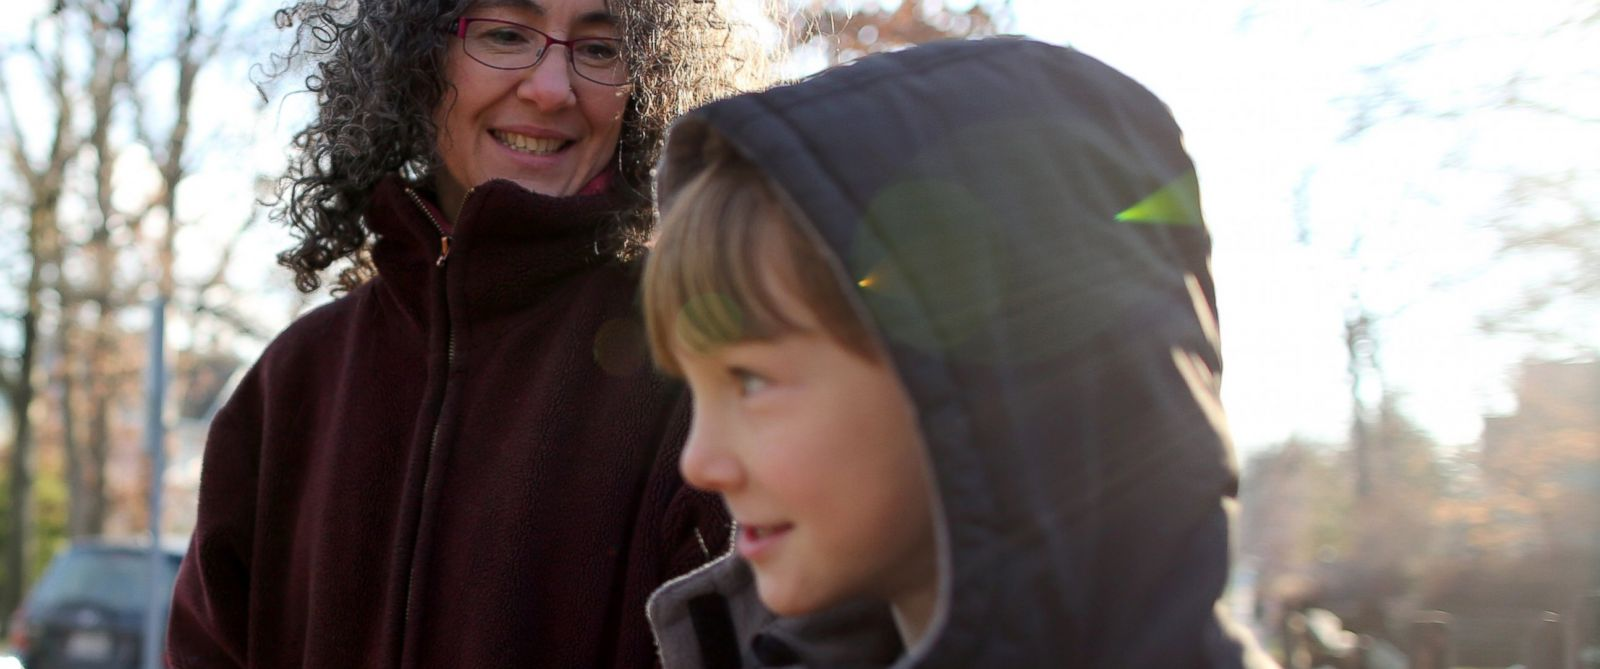 PHOTO: Danielle Meitiv waits with her son Rafi Meitiv, Jan. 16, 2015.